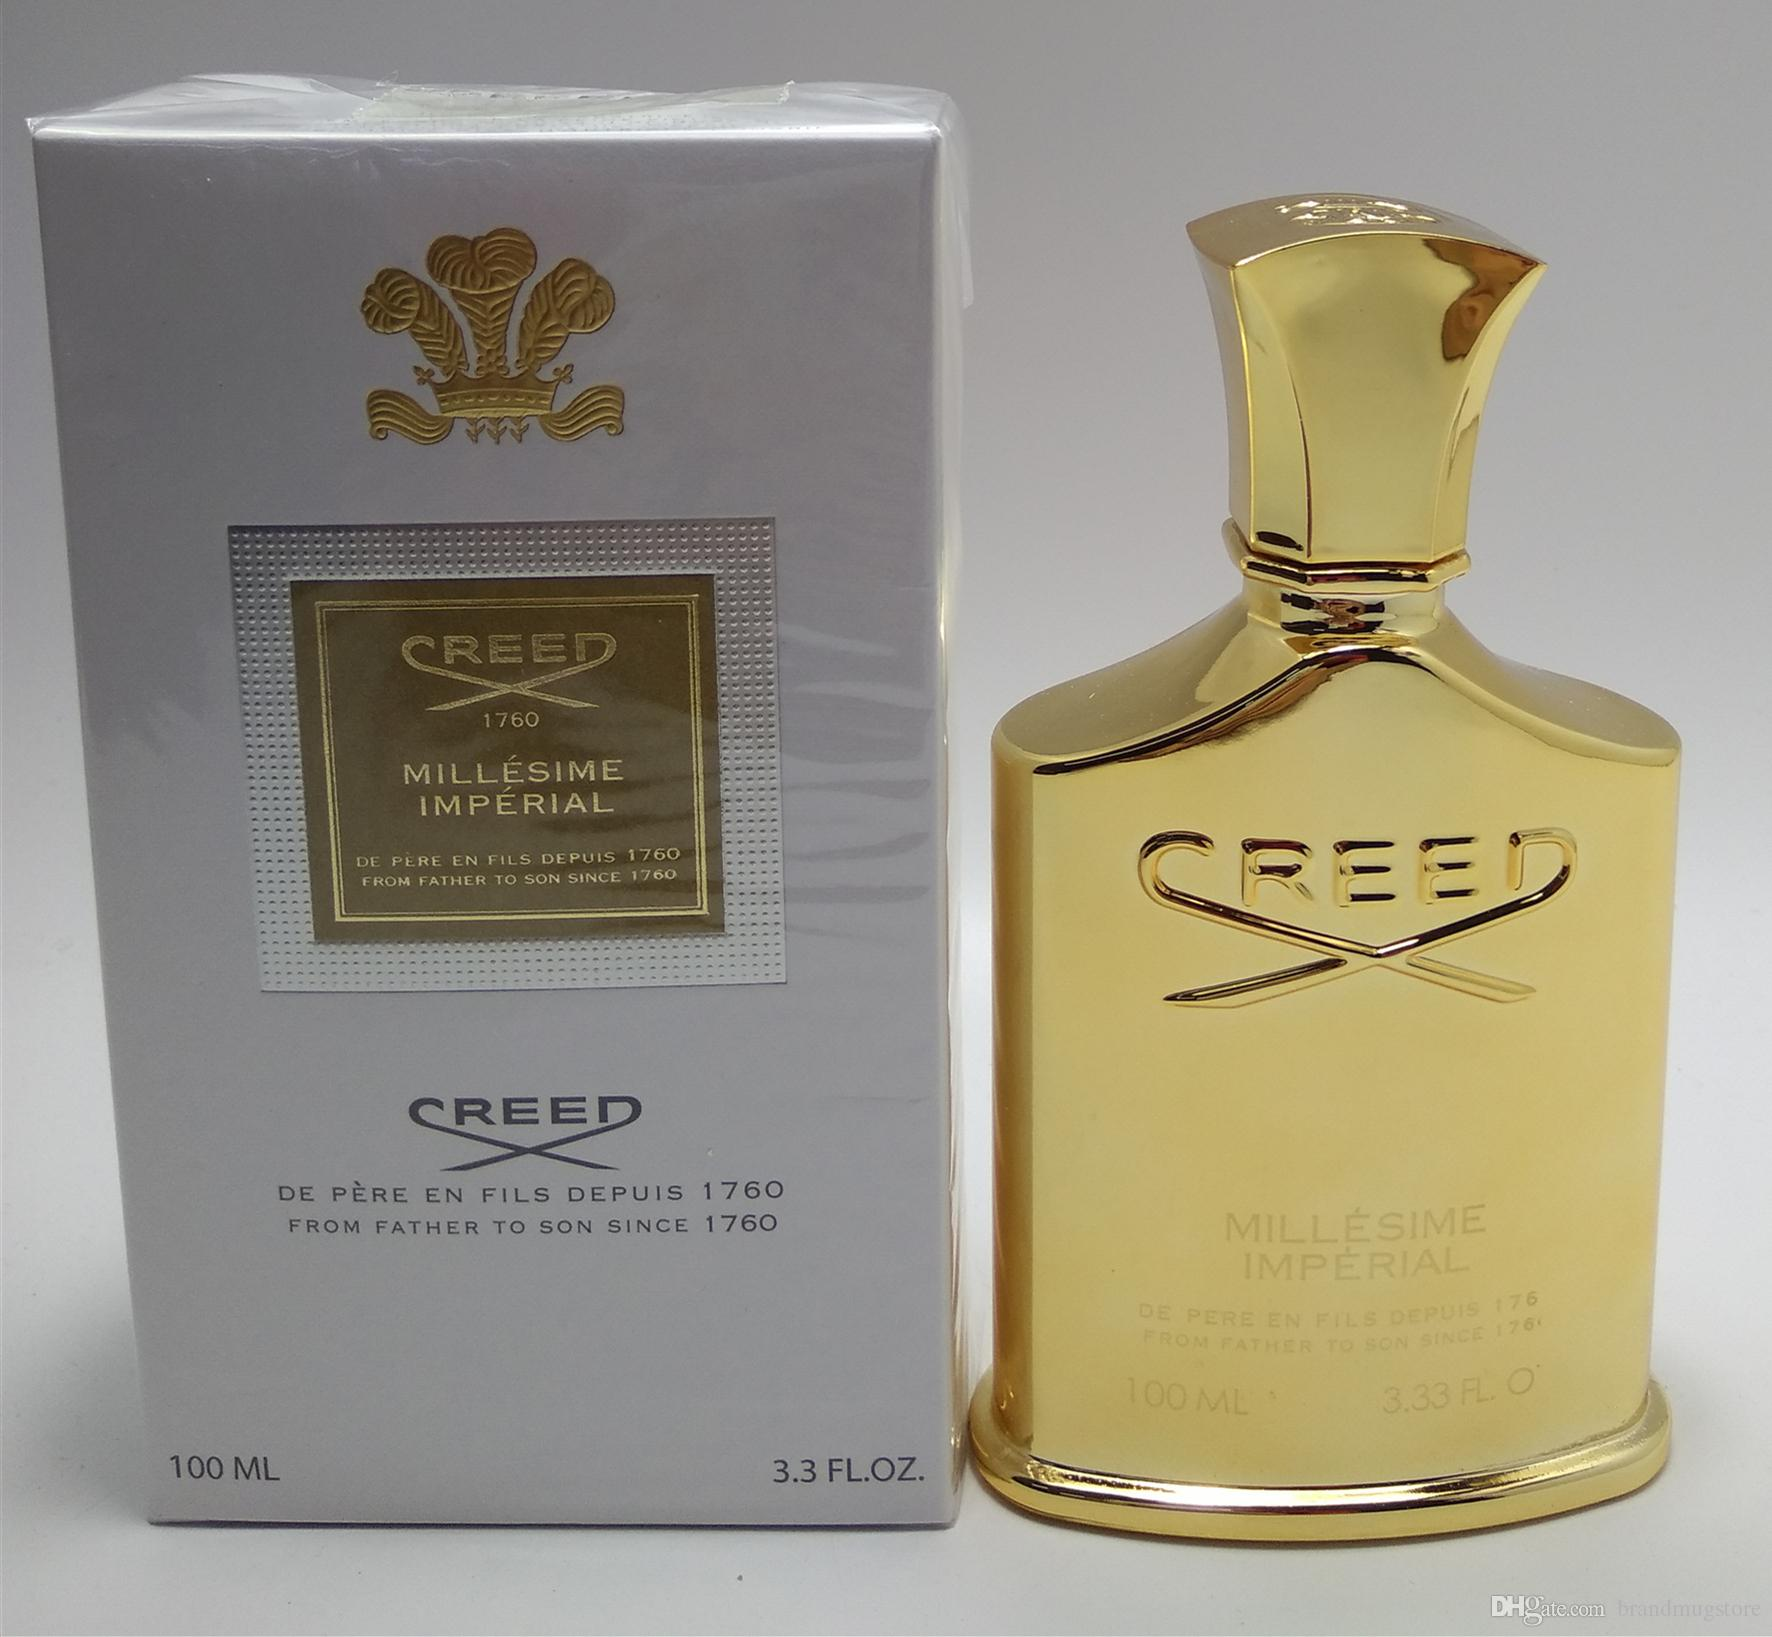 Lowest price Creed lady crystal water no 5 perfume 120ML 100ML for woman With Long Lasting Time High Fragrance Good Quality